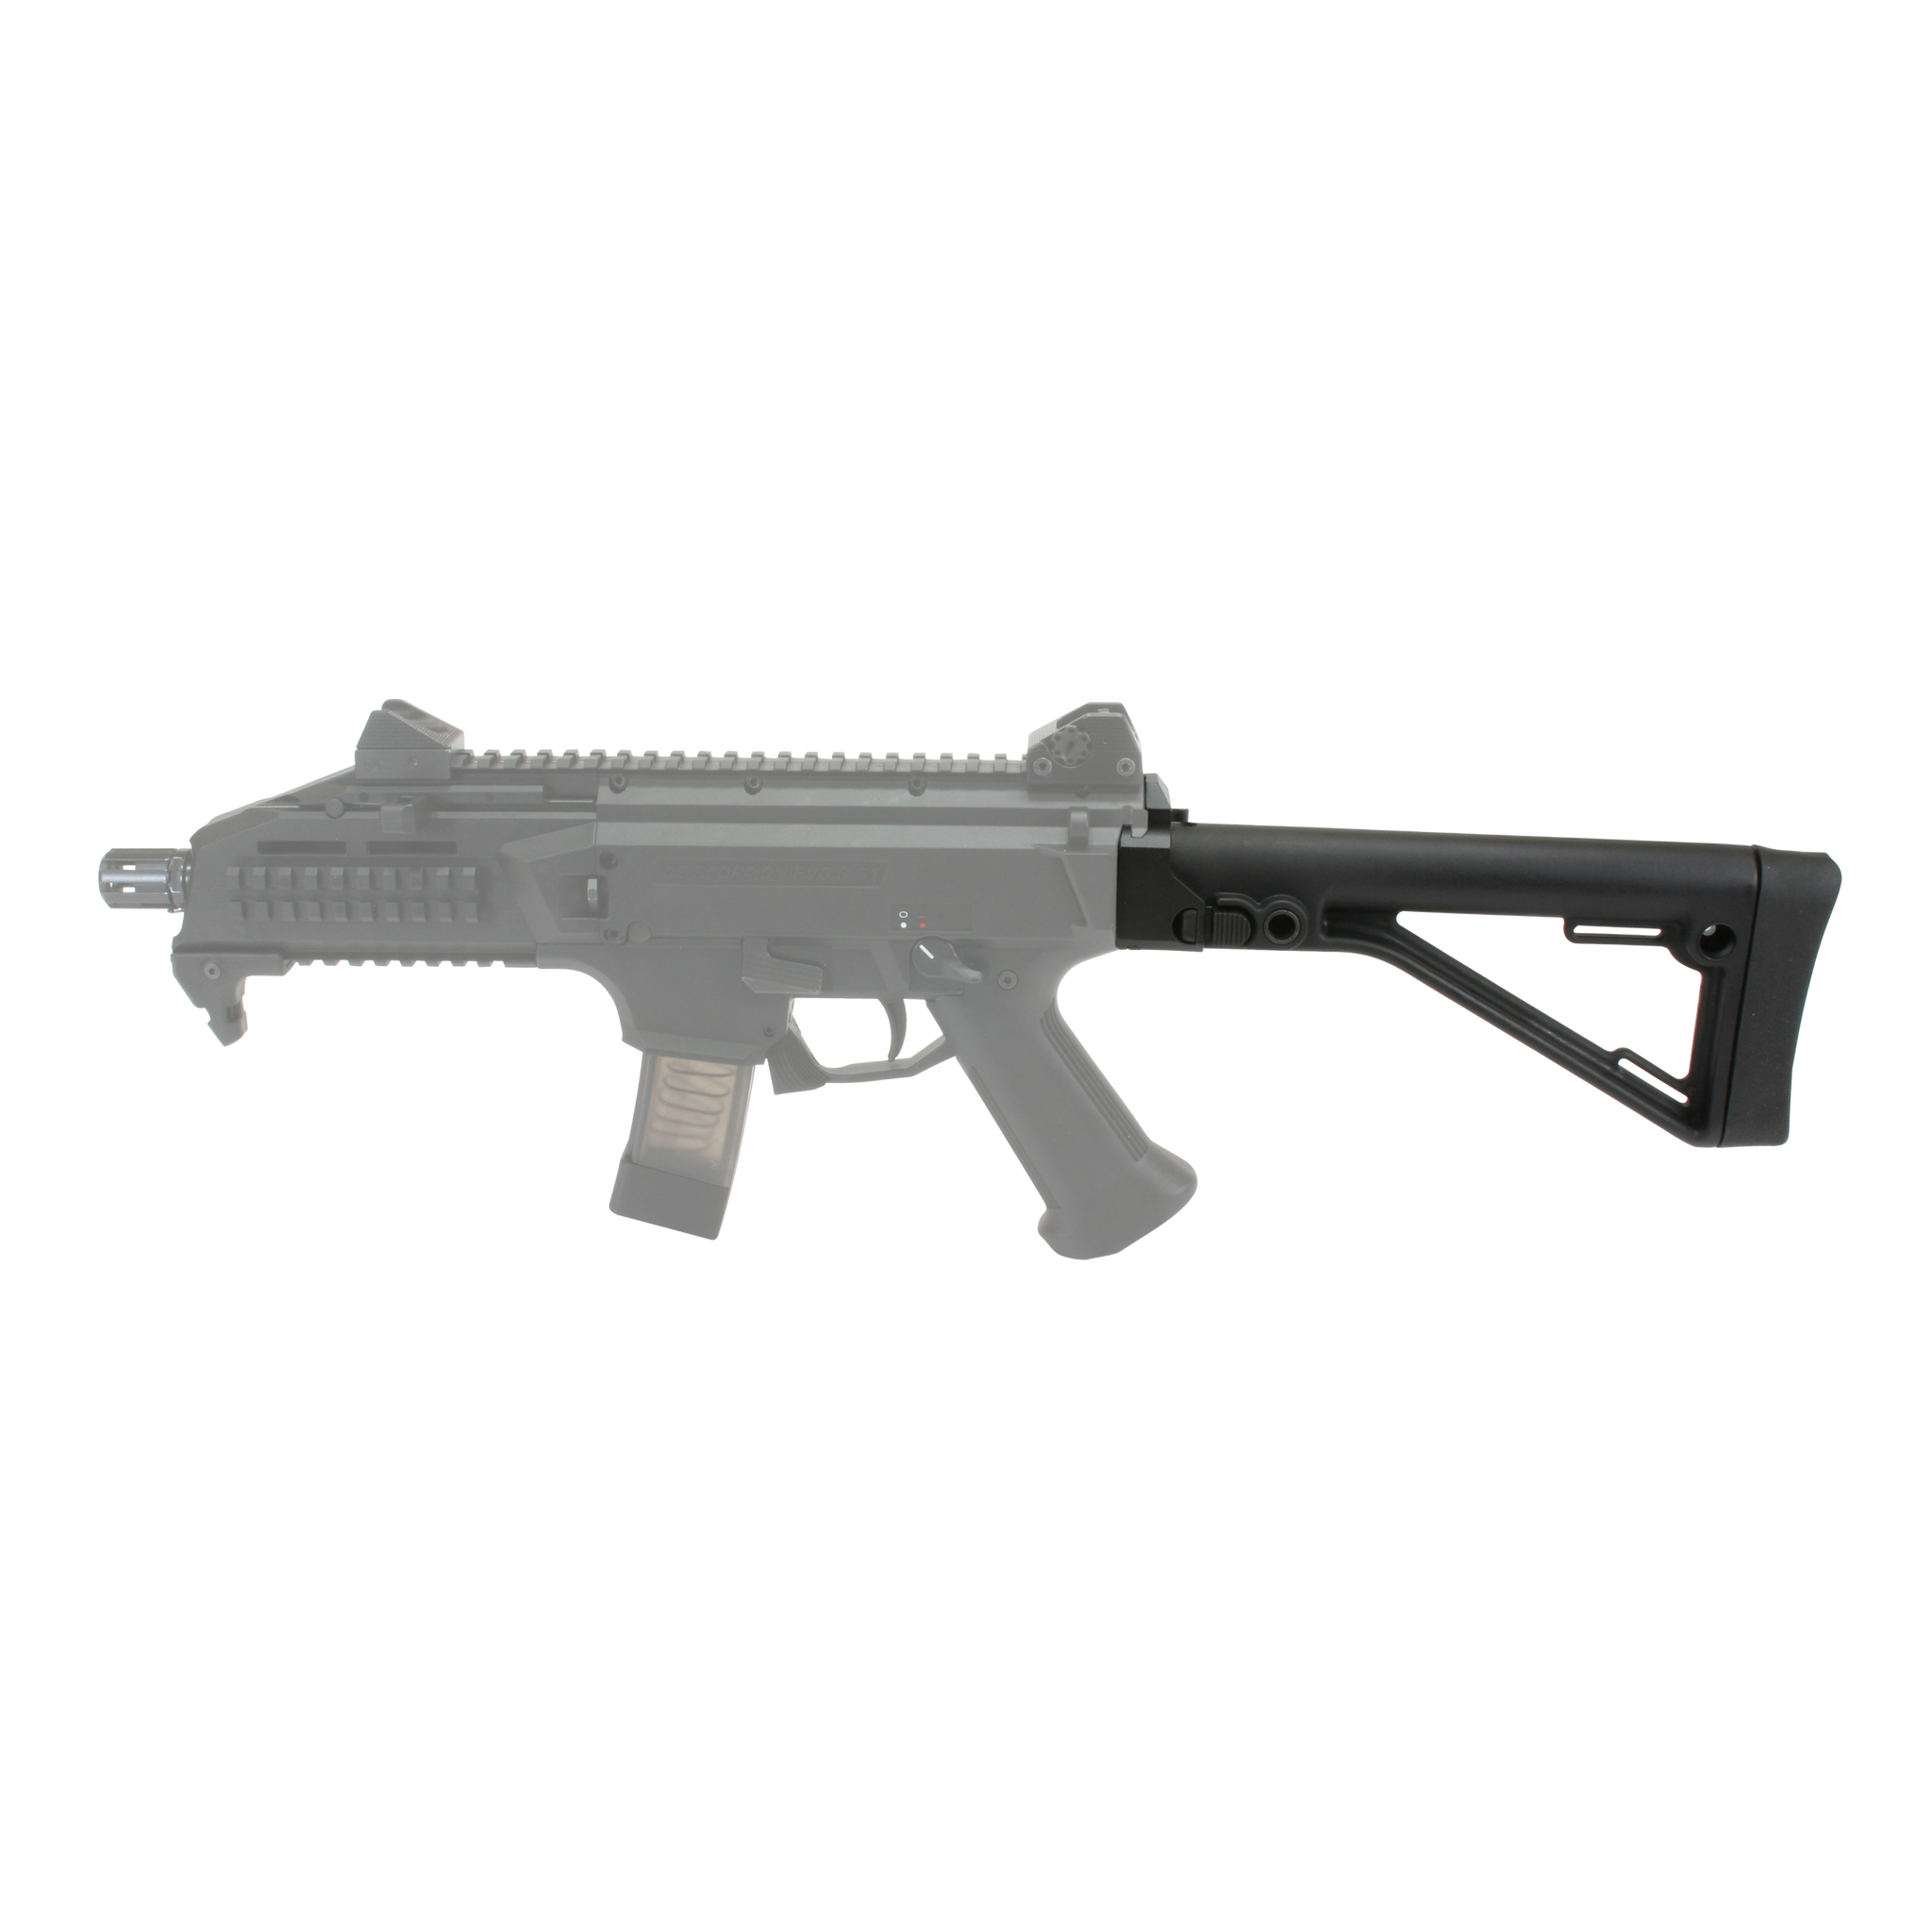 NEW PRODUCT: CZ SCORPION EVO 3 SIDE FOLDING STOCK KIT